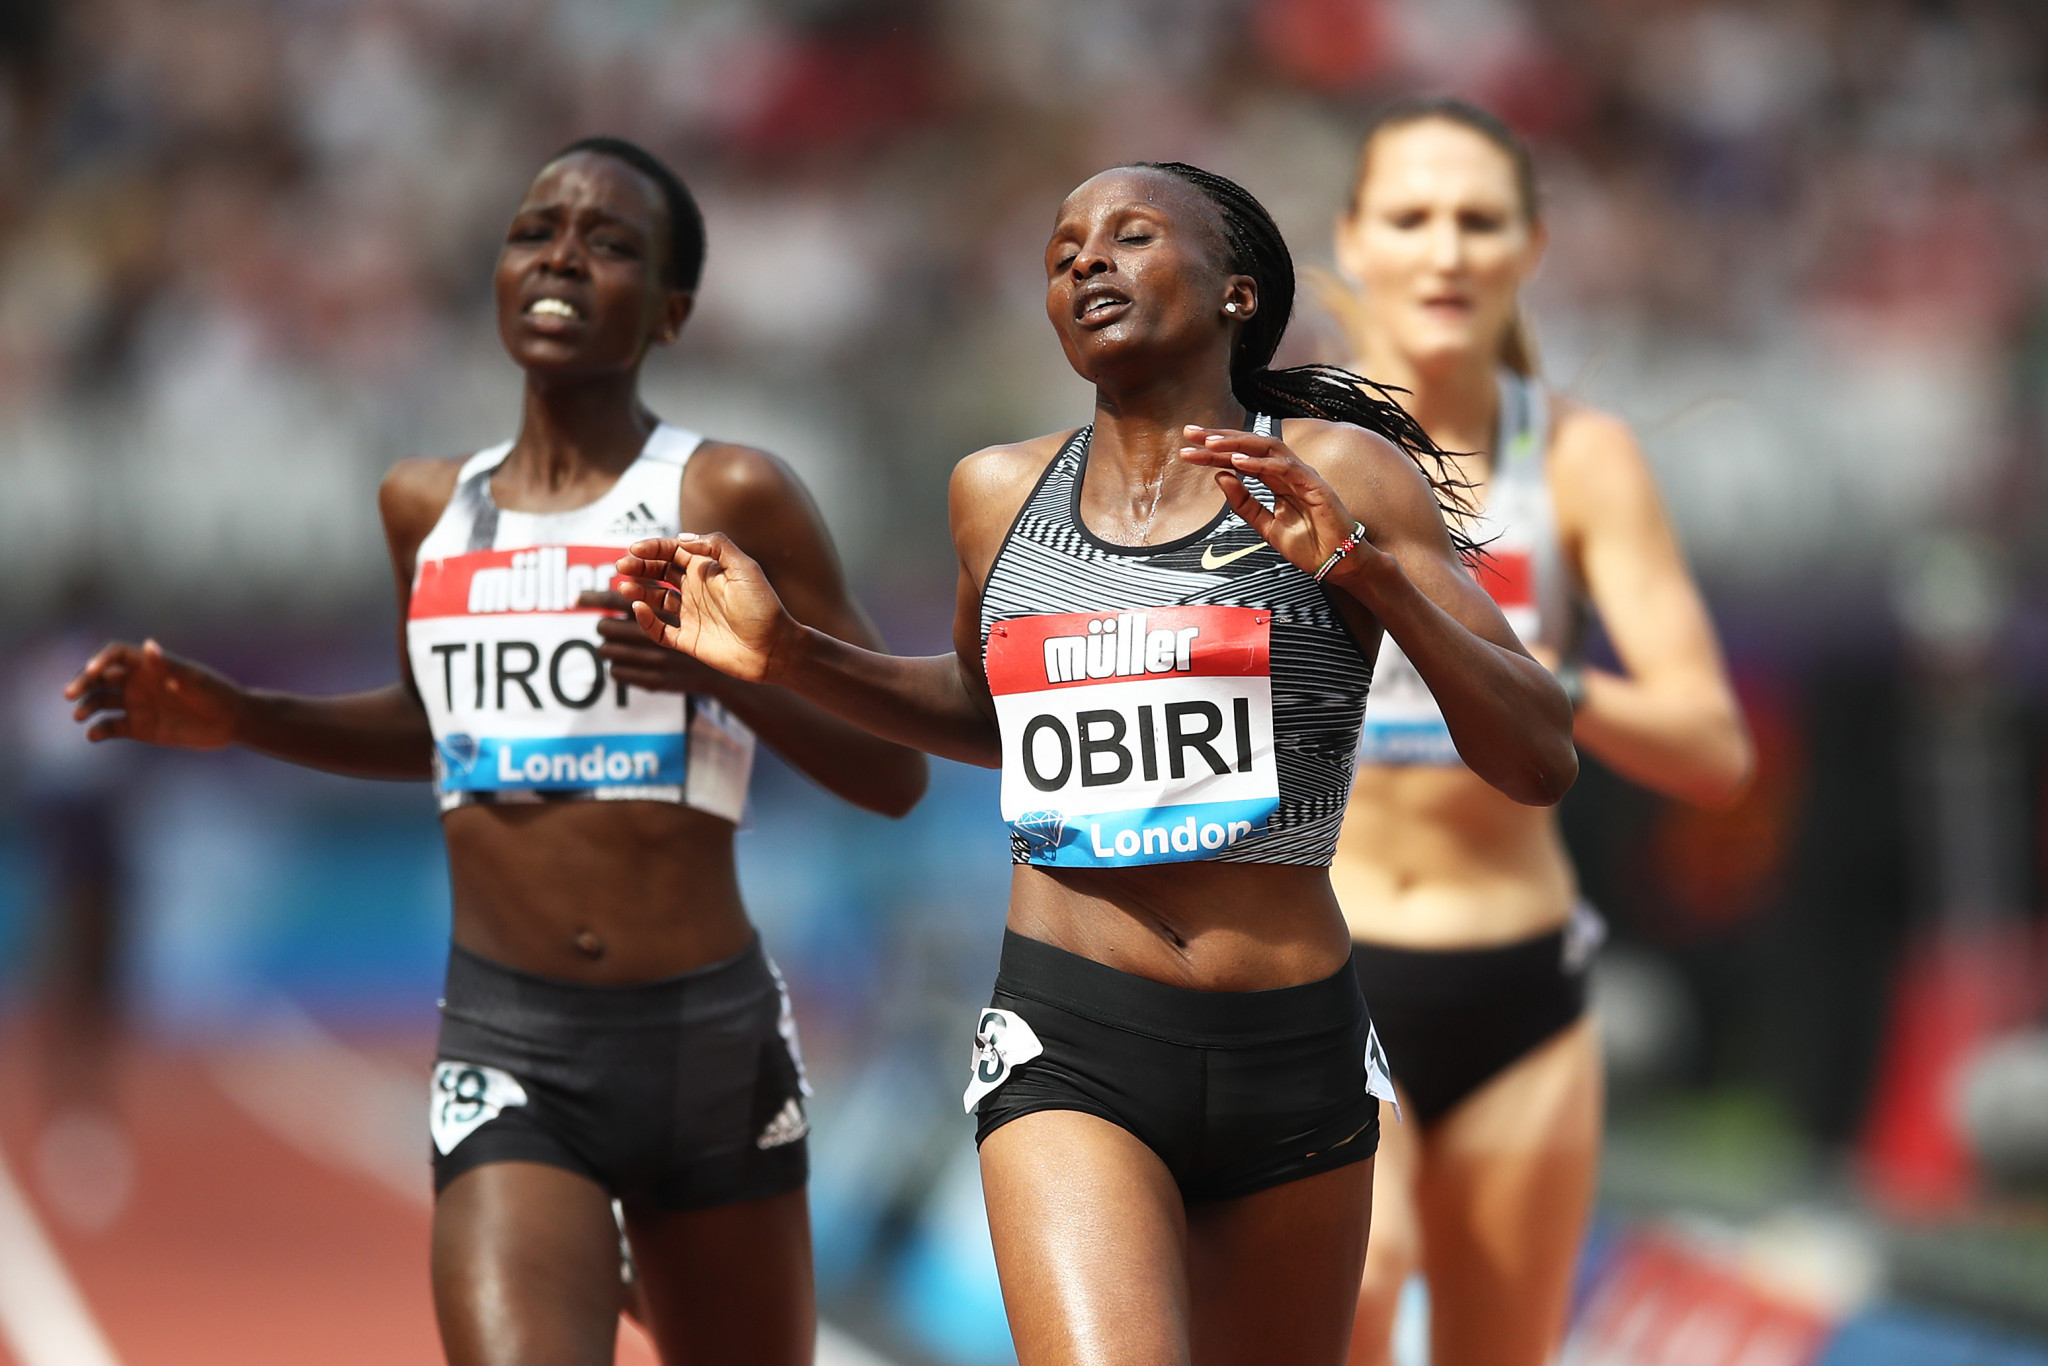 Hassan's 5,000m personal best only earns her third place at London Diamond League as Obiri wins